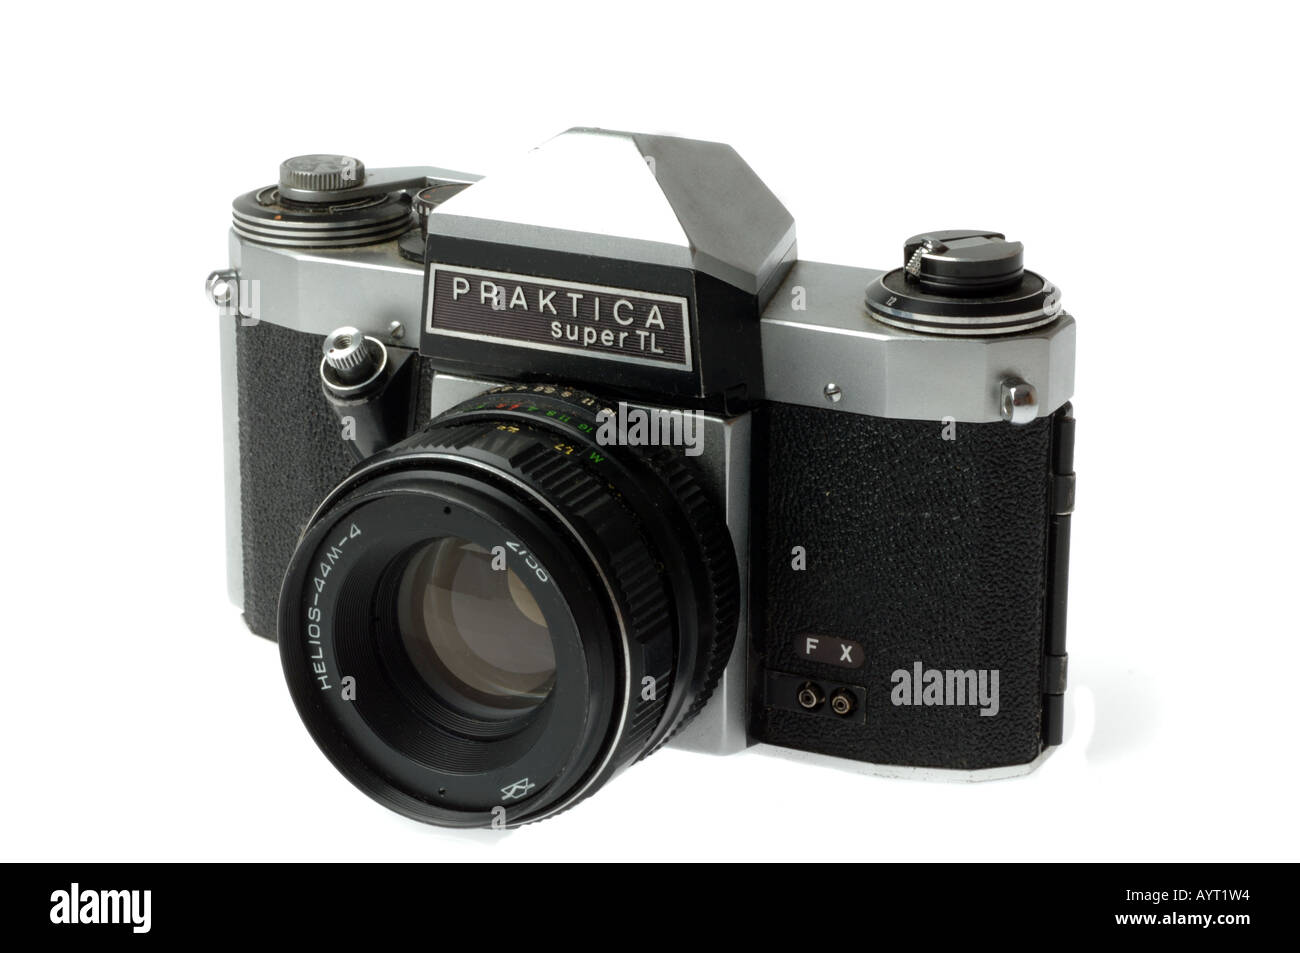 Praktica super tl manual film camera stock photo: 9813331 alamy